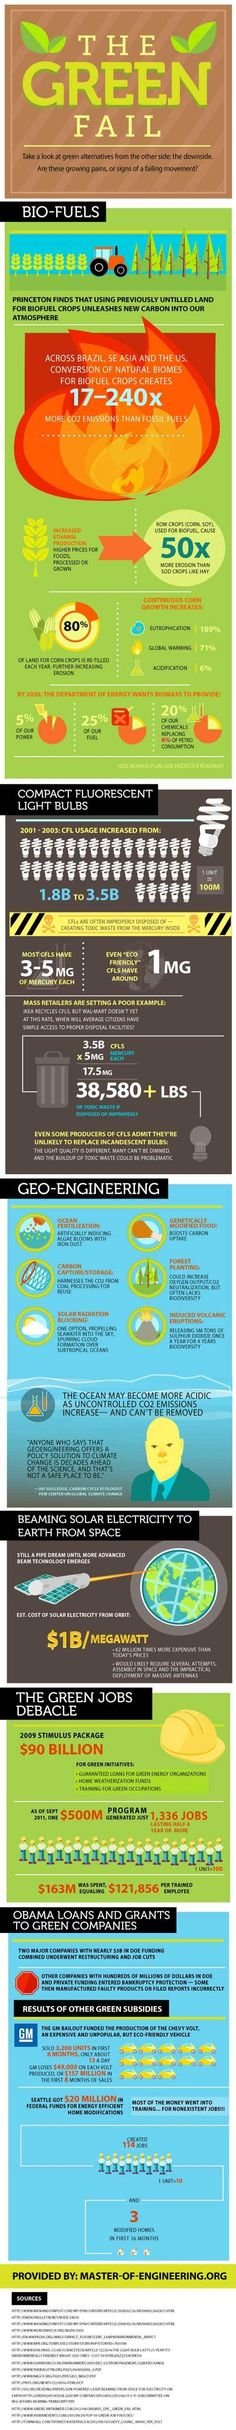 The Green Fail Infographic | Energy Hack